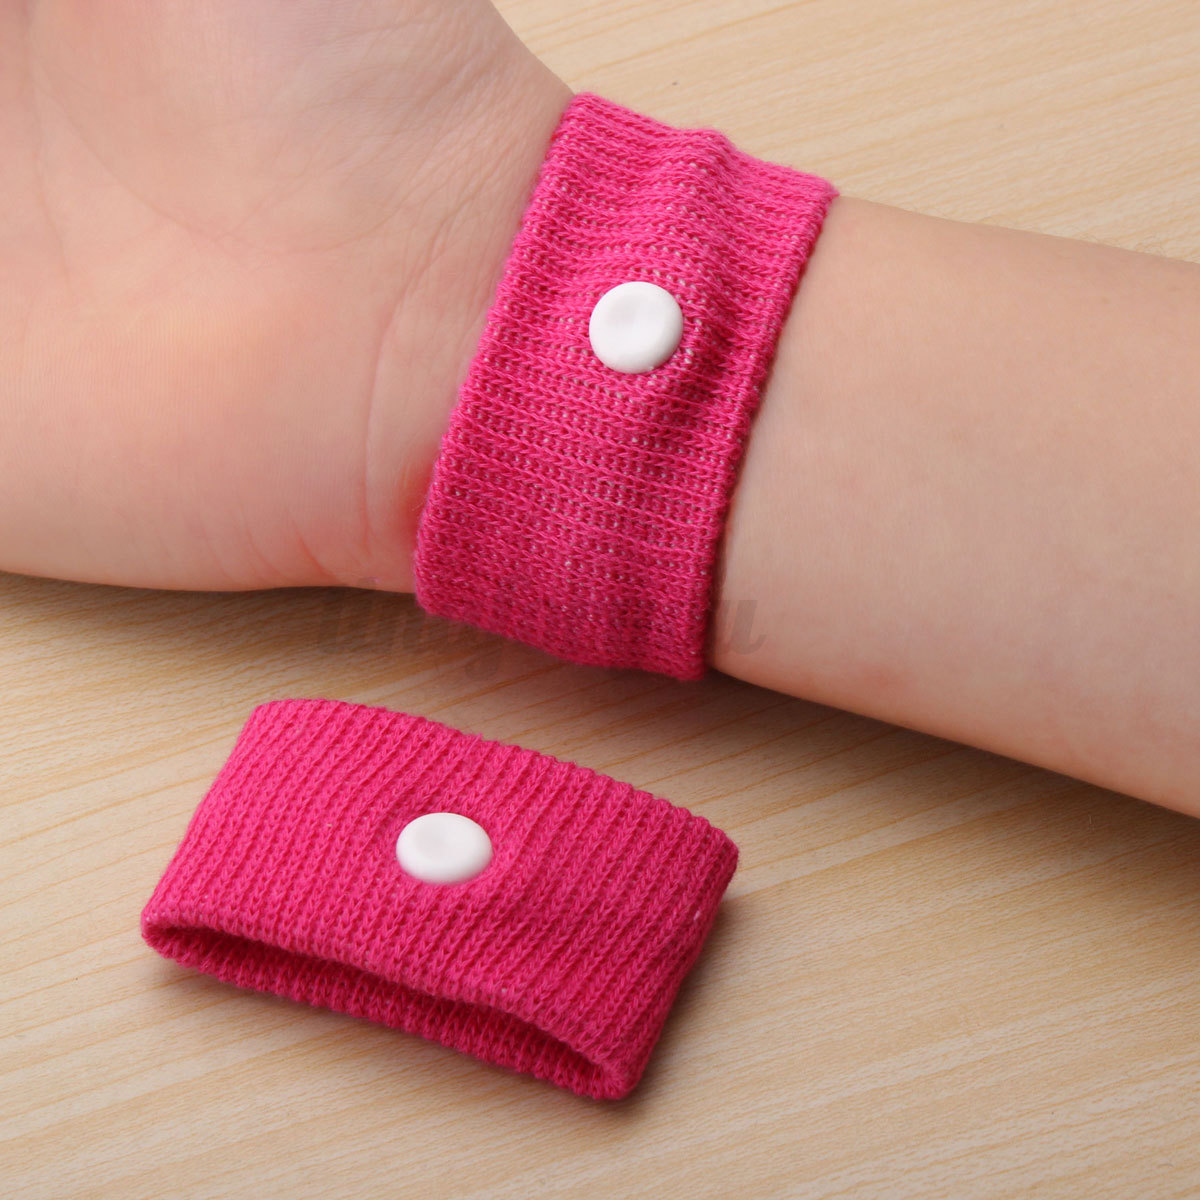 Car sickness wrist bands